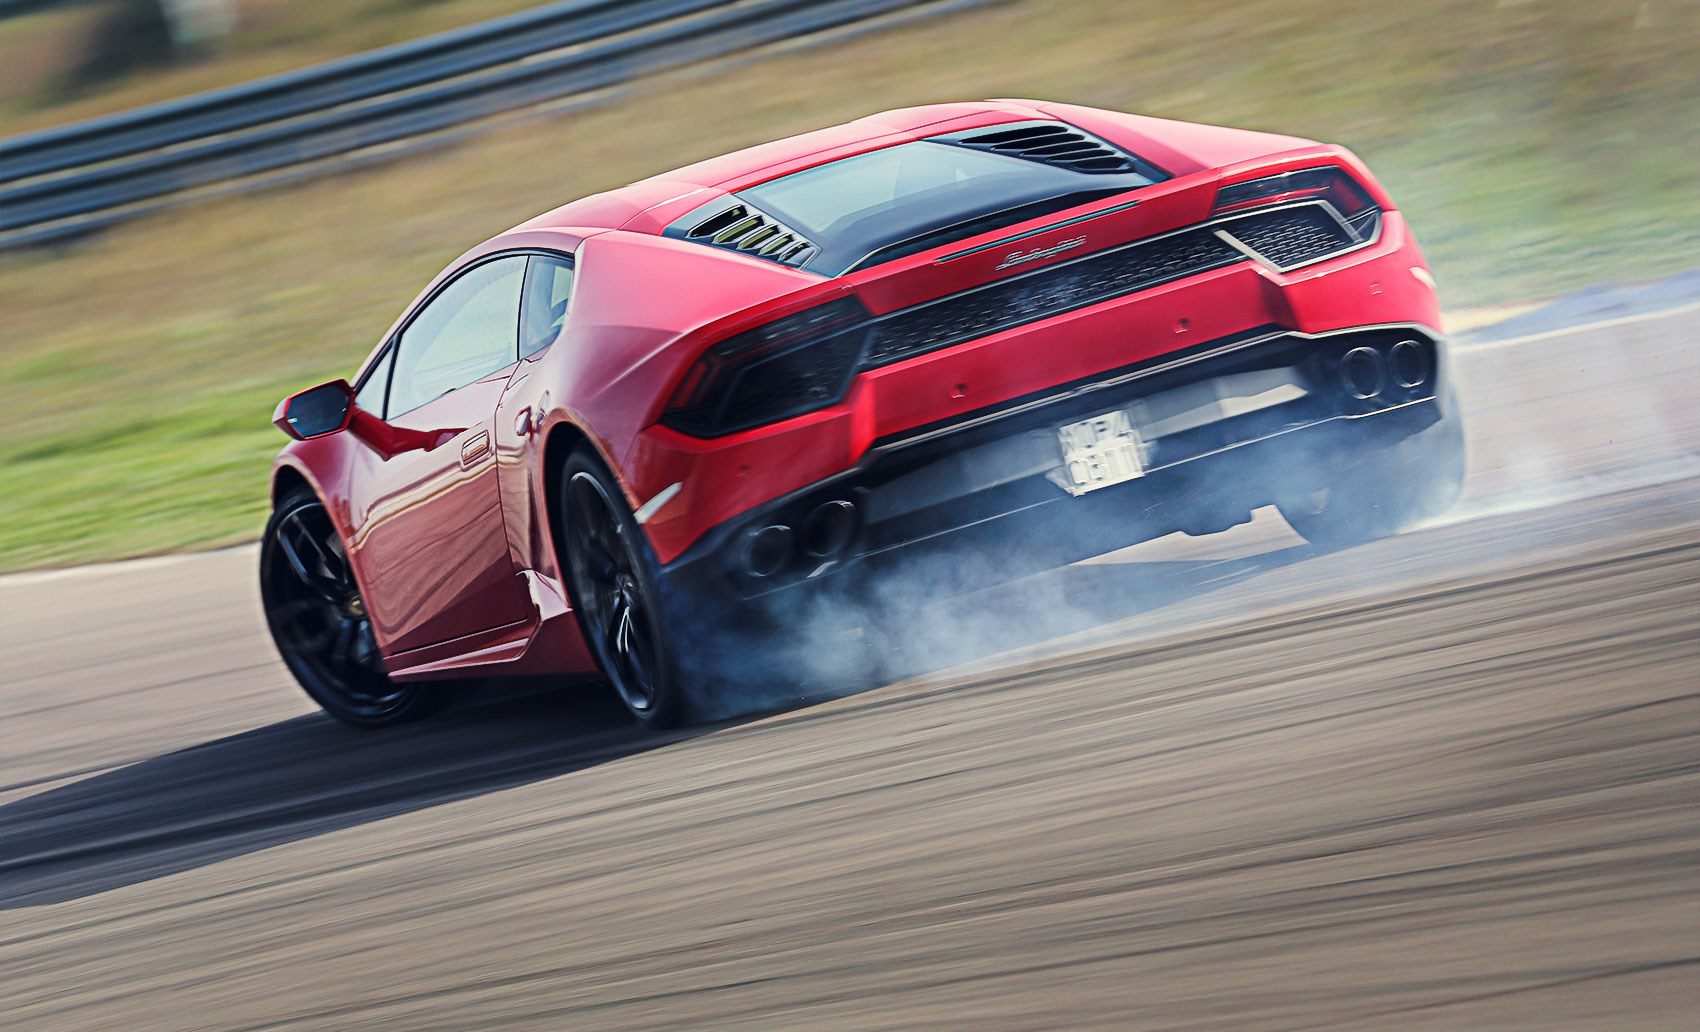 A Dash Of Oversteer Is The Order Of The Day With The New LP580 2 ...